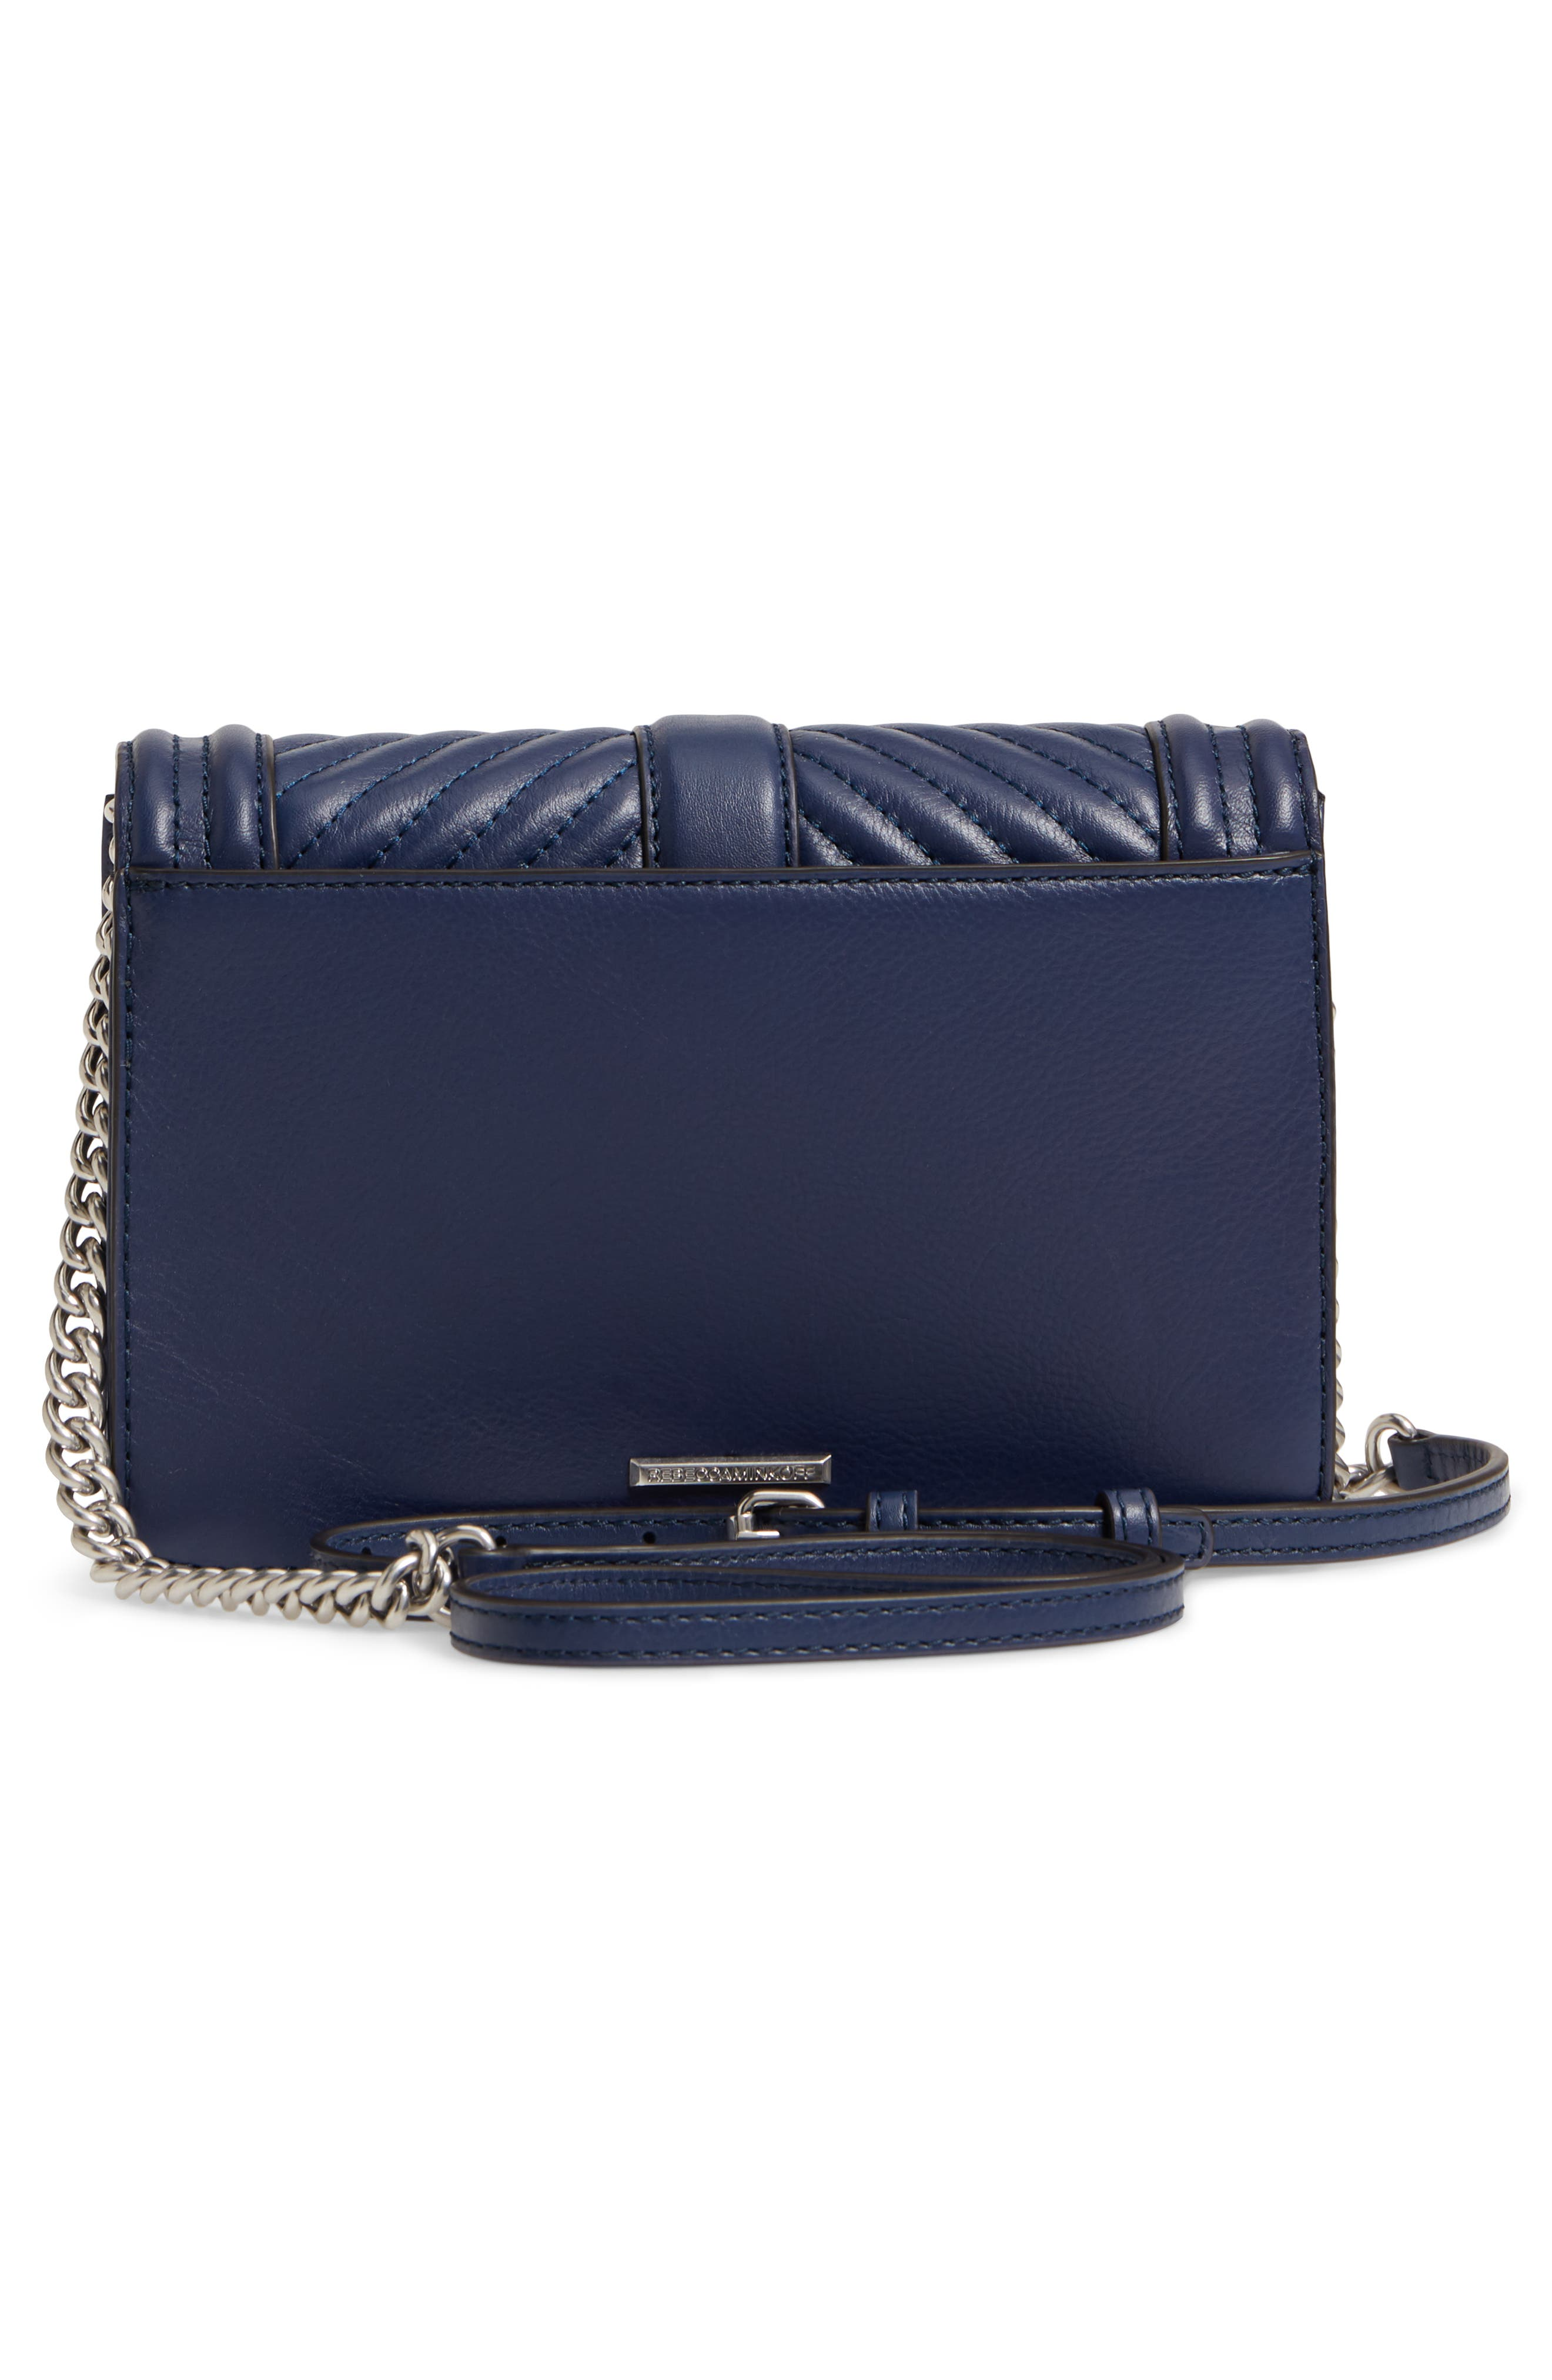 Small Love Leather Crossbody Bag,                             Alternate thumbnail 3, color,                             True Navy